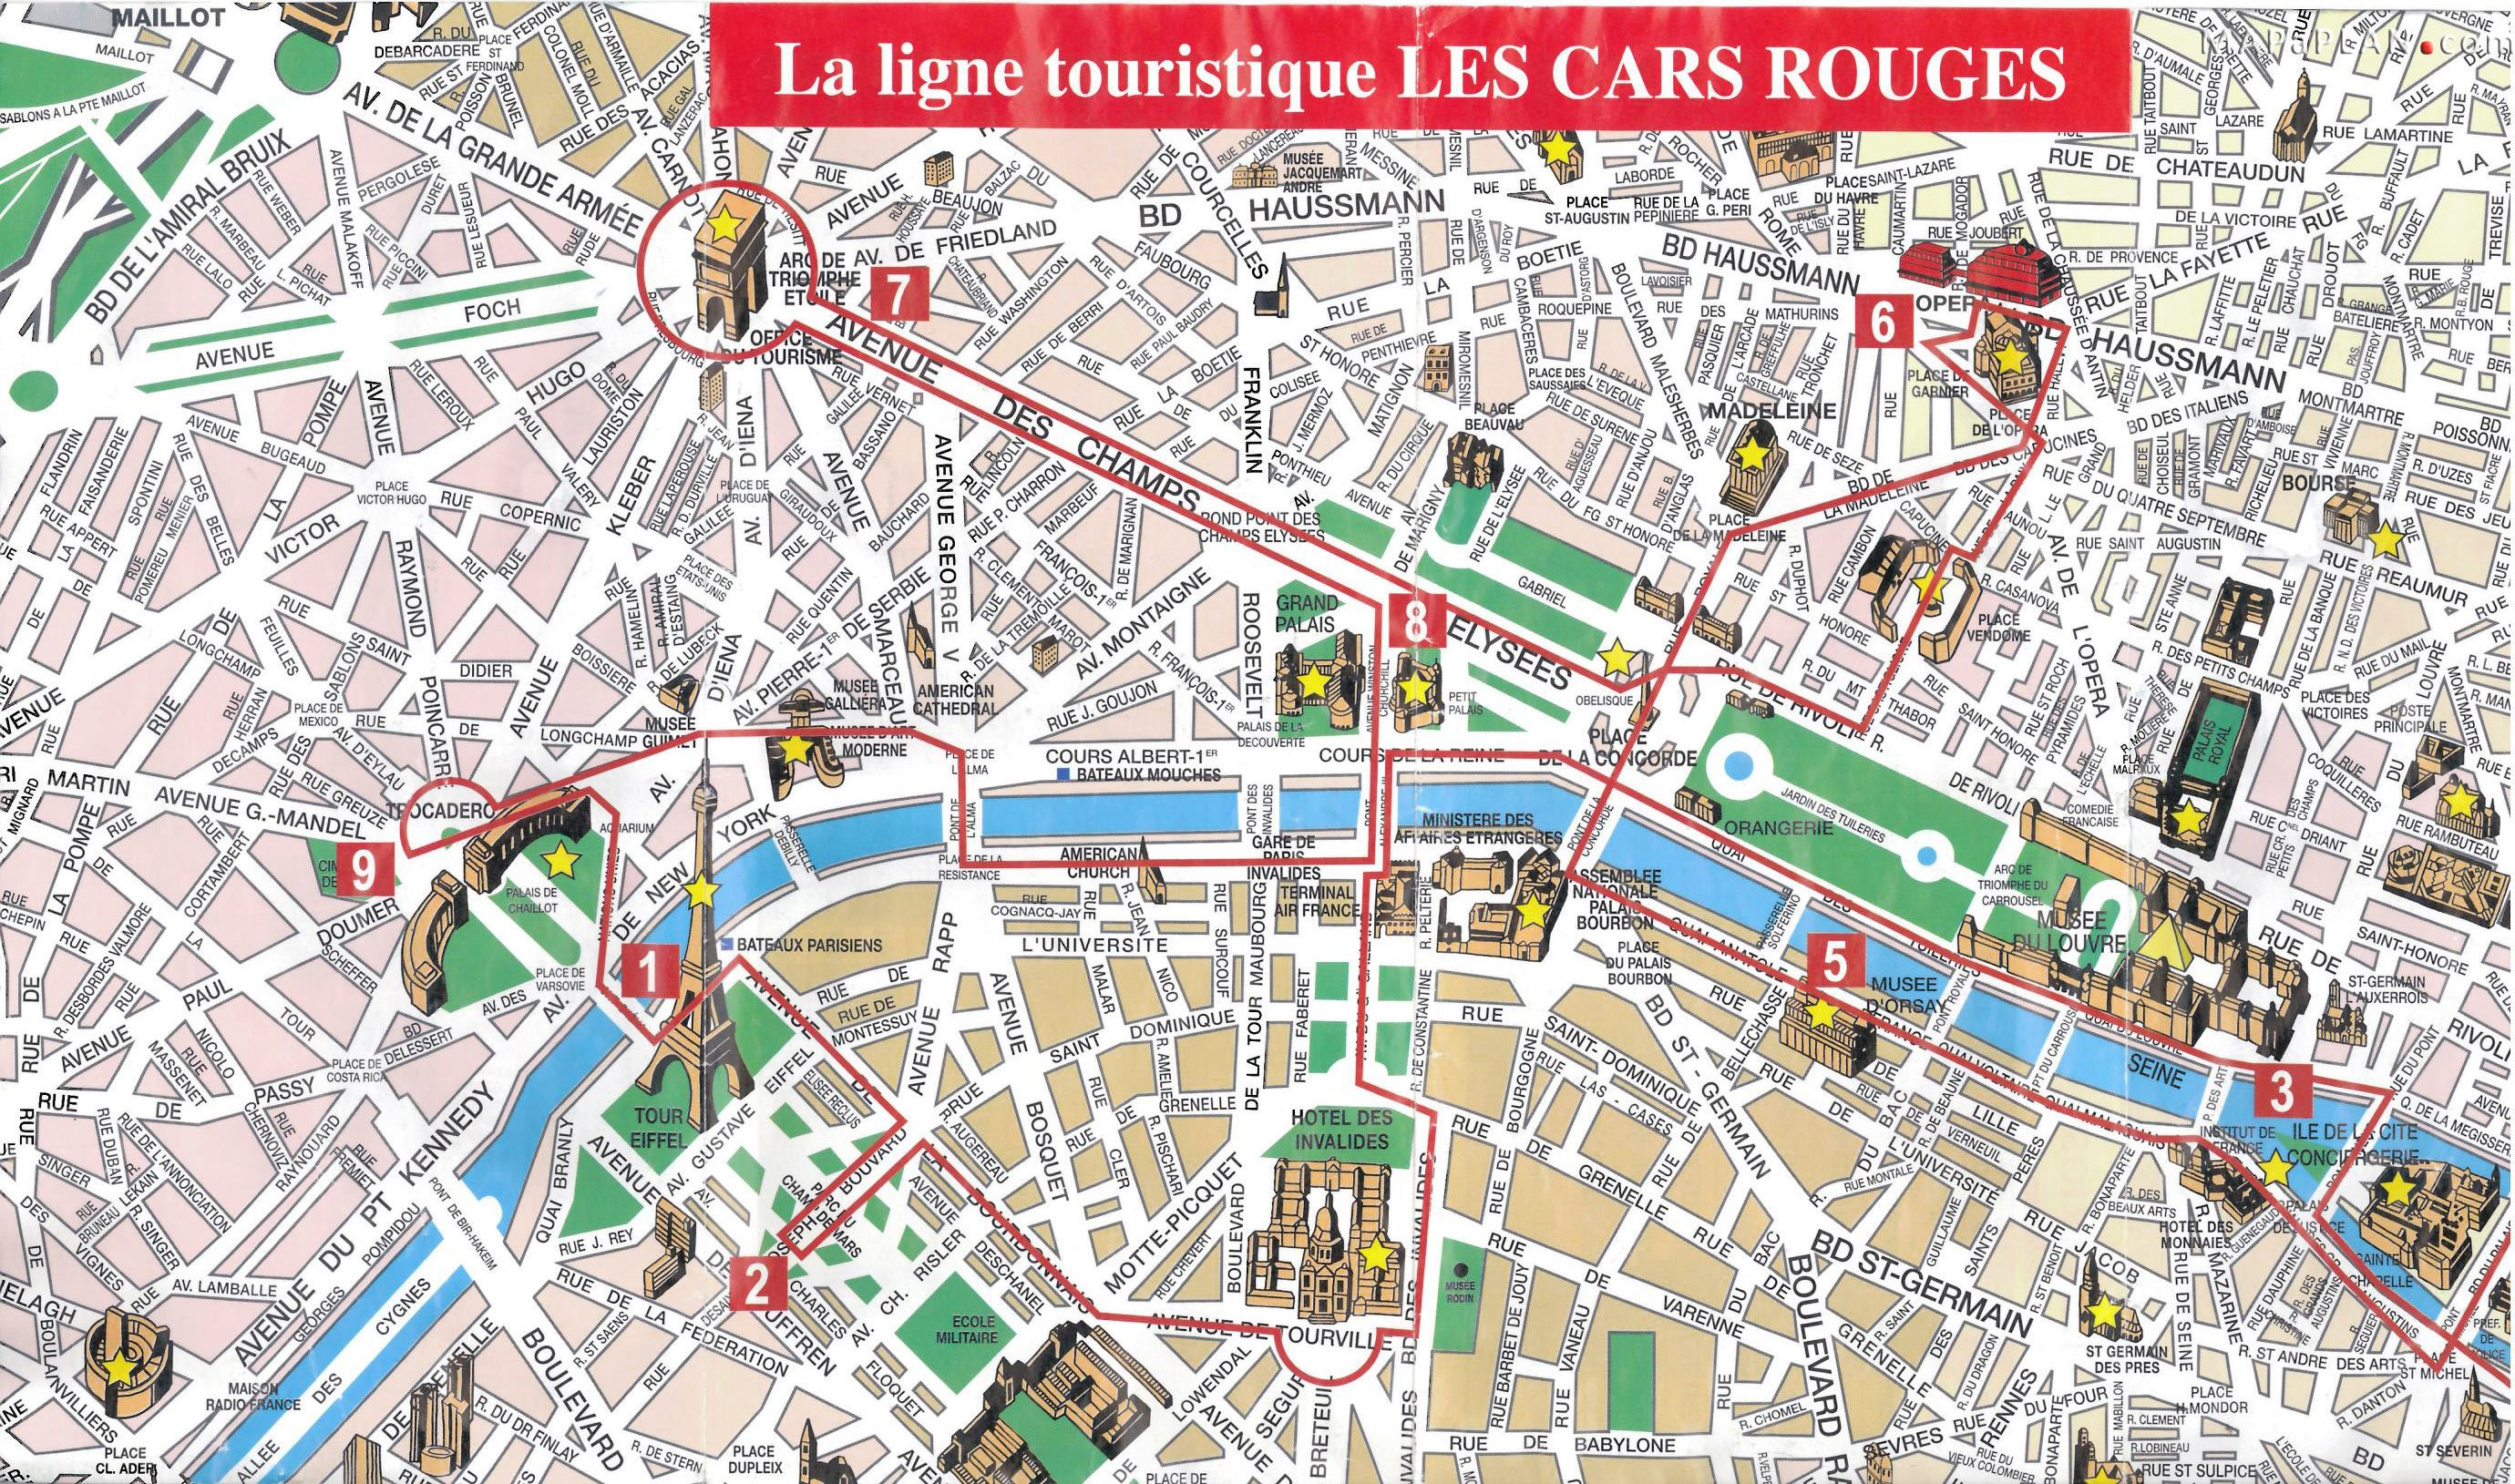 Paris Top Tourist Attractions Map 08 City Sightseeting Route ...